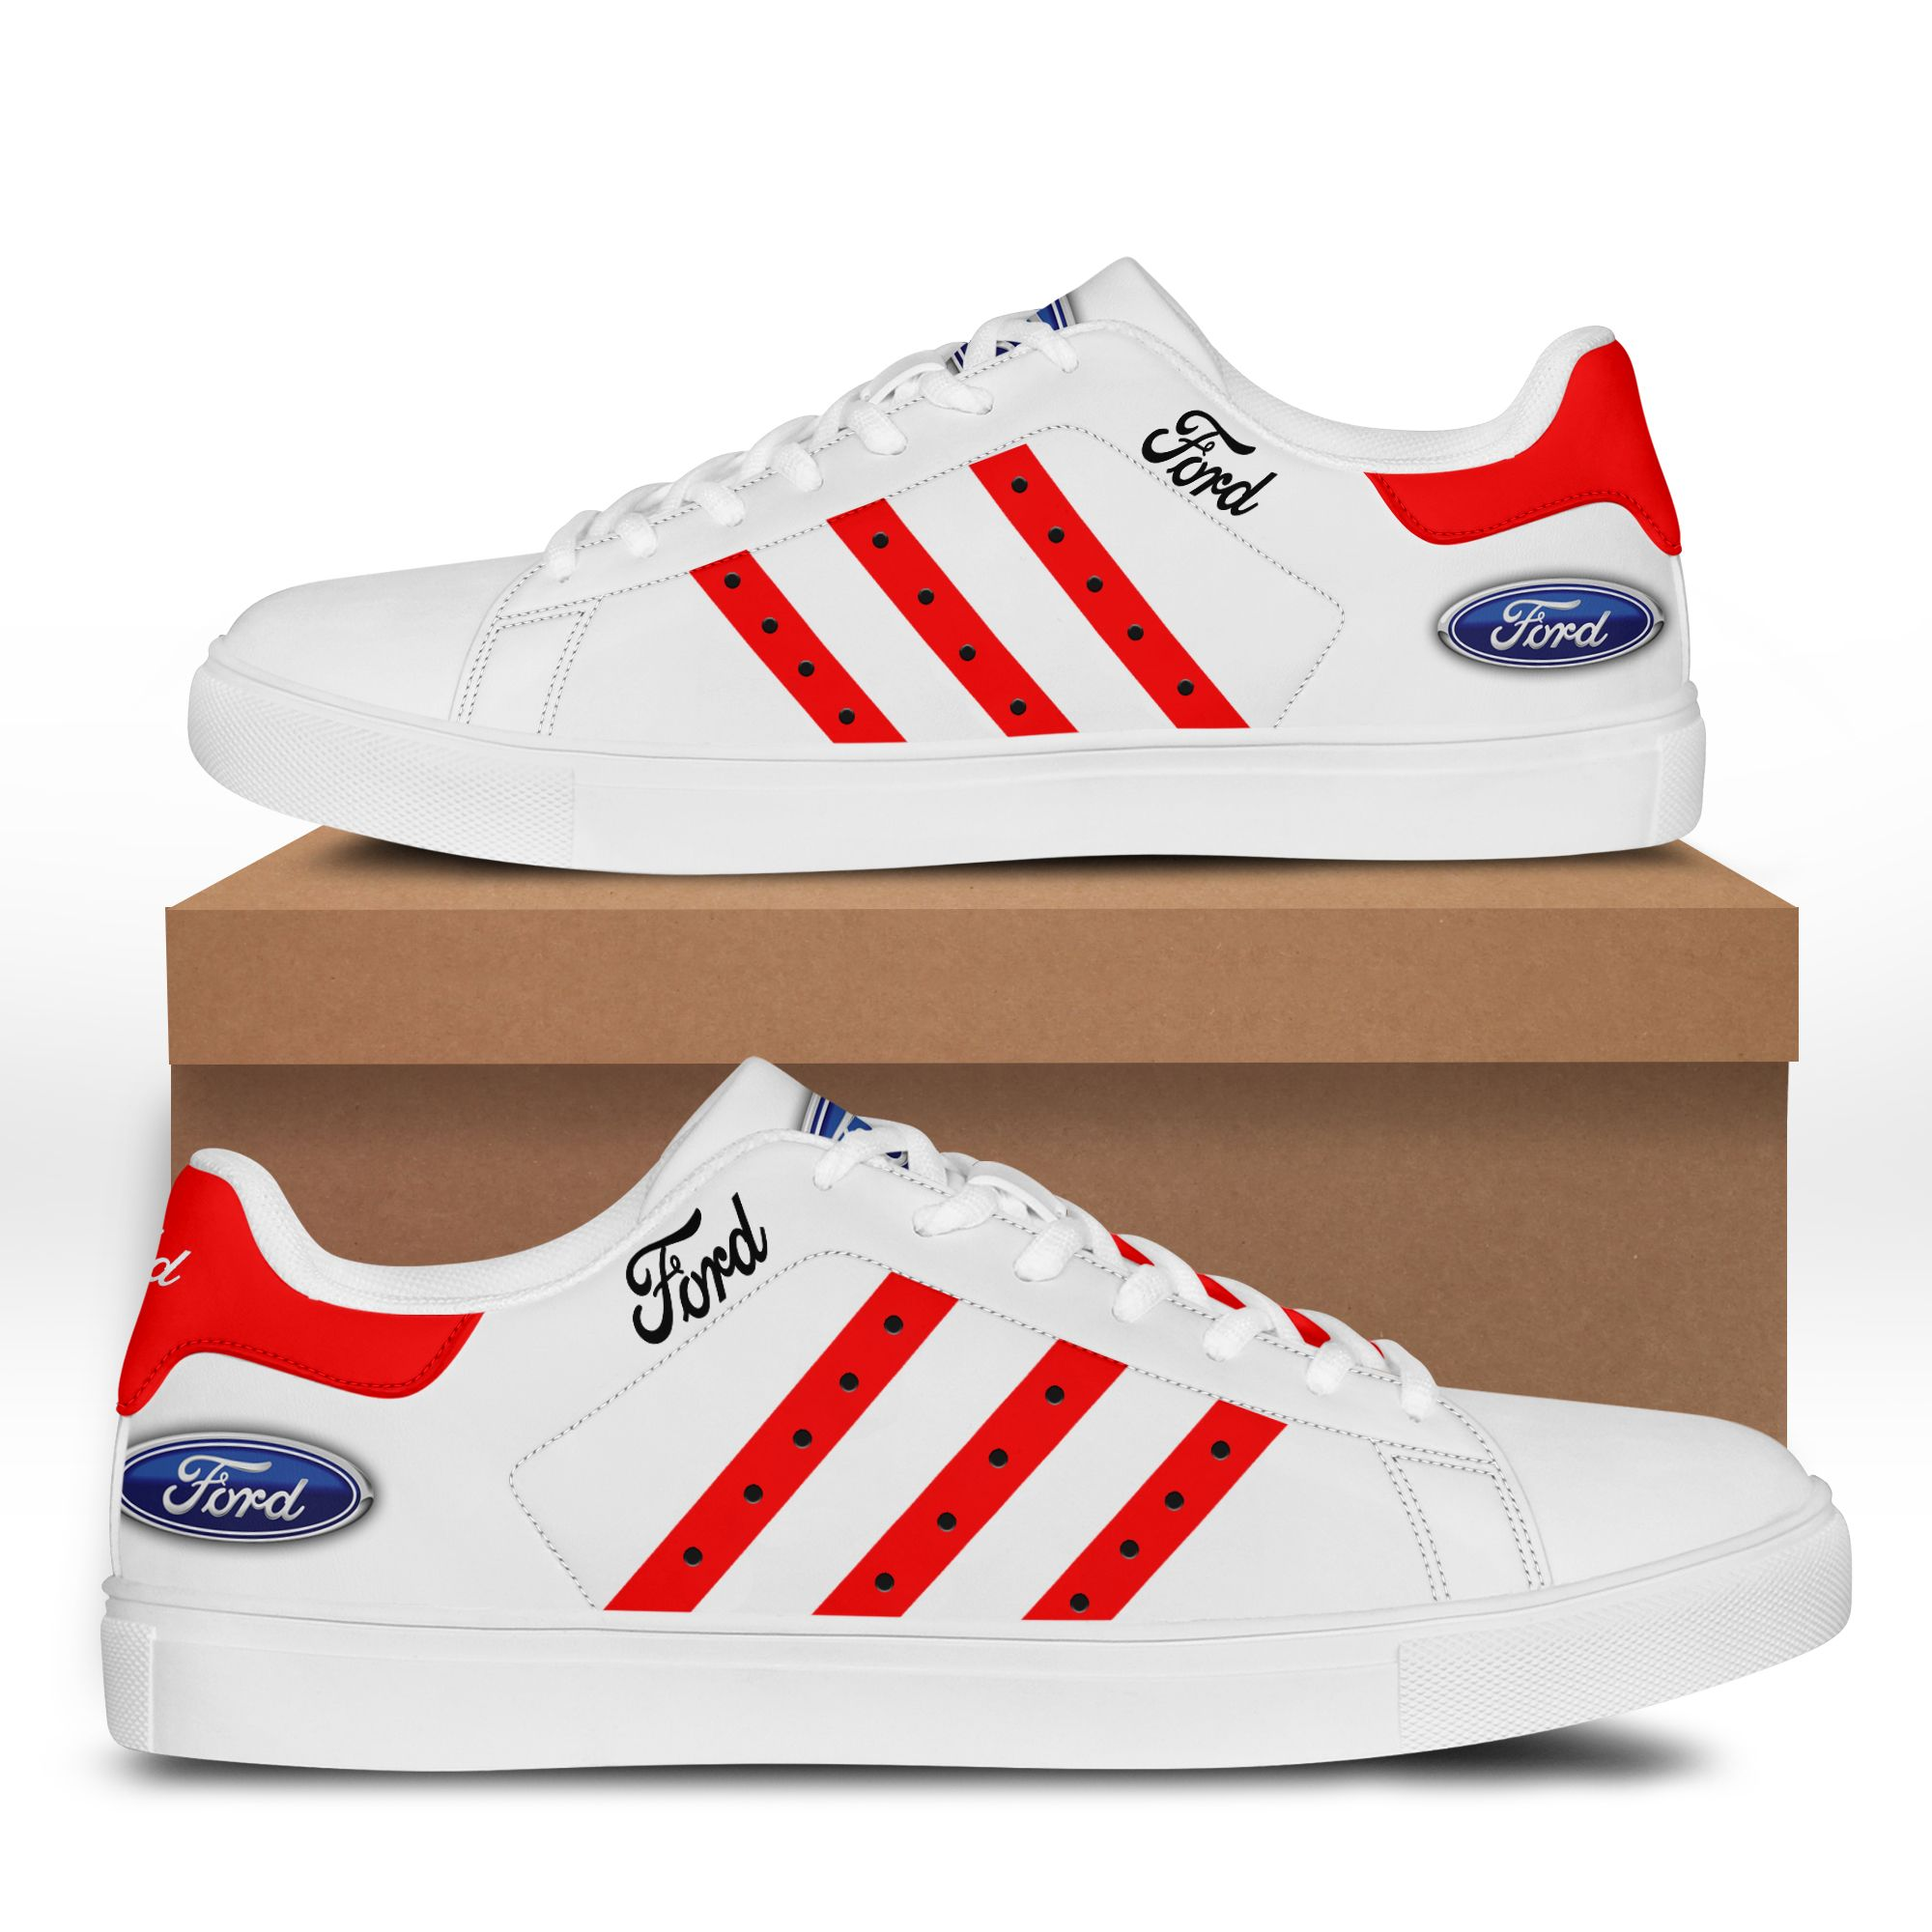 Ford car Stan Smith Shoes Sneaker